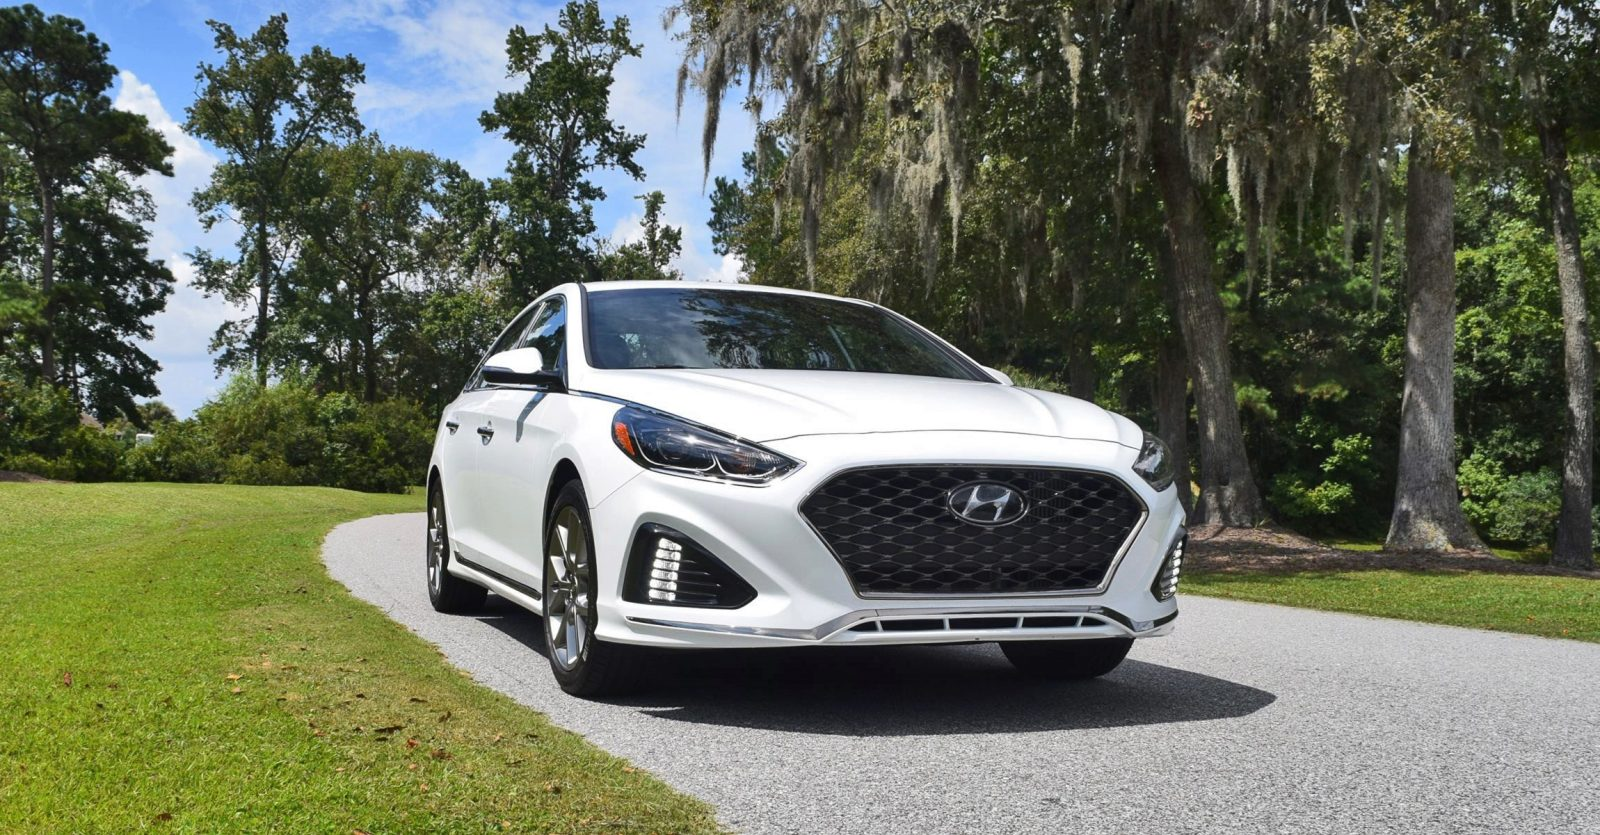 2018 Hyundai Sonata 2 0t First Drive Review W Video